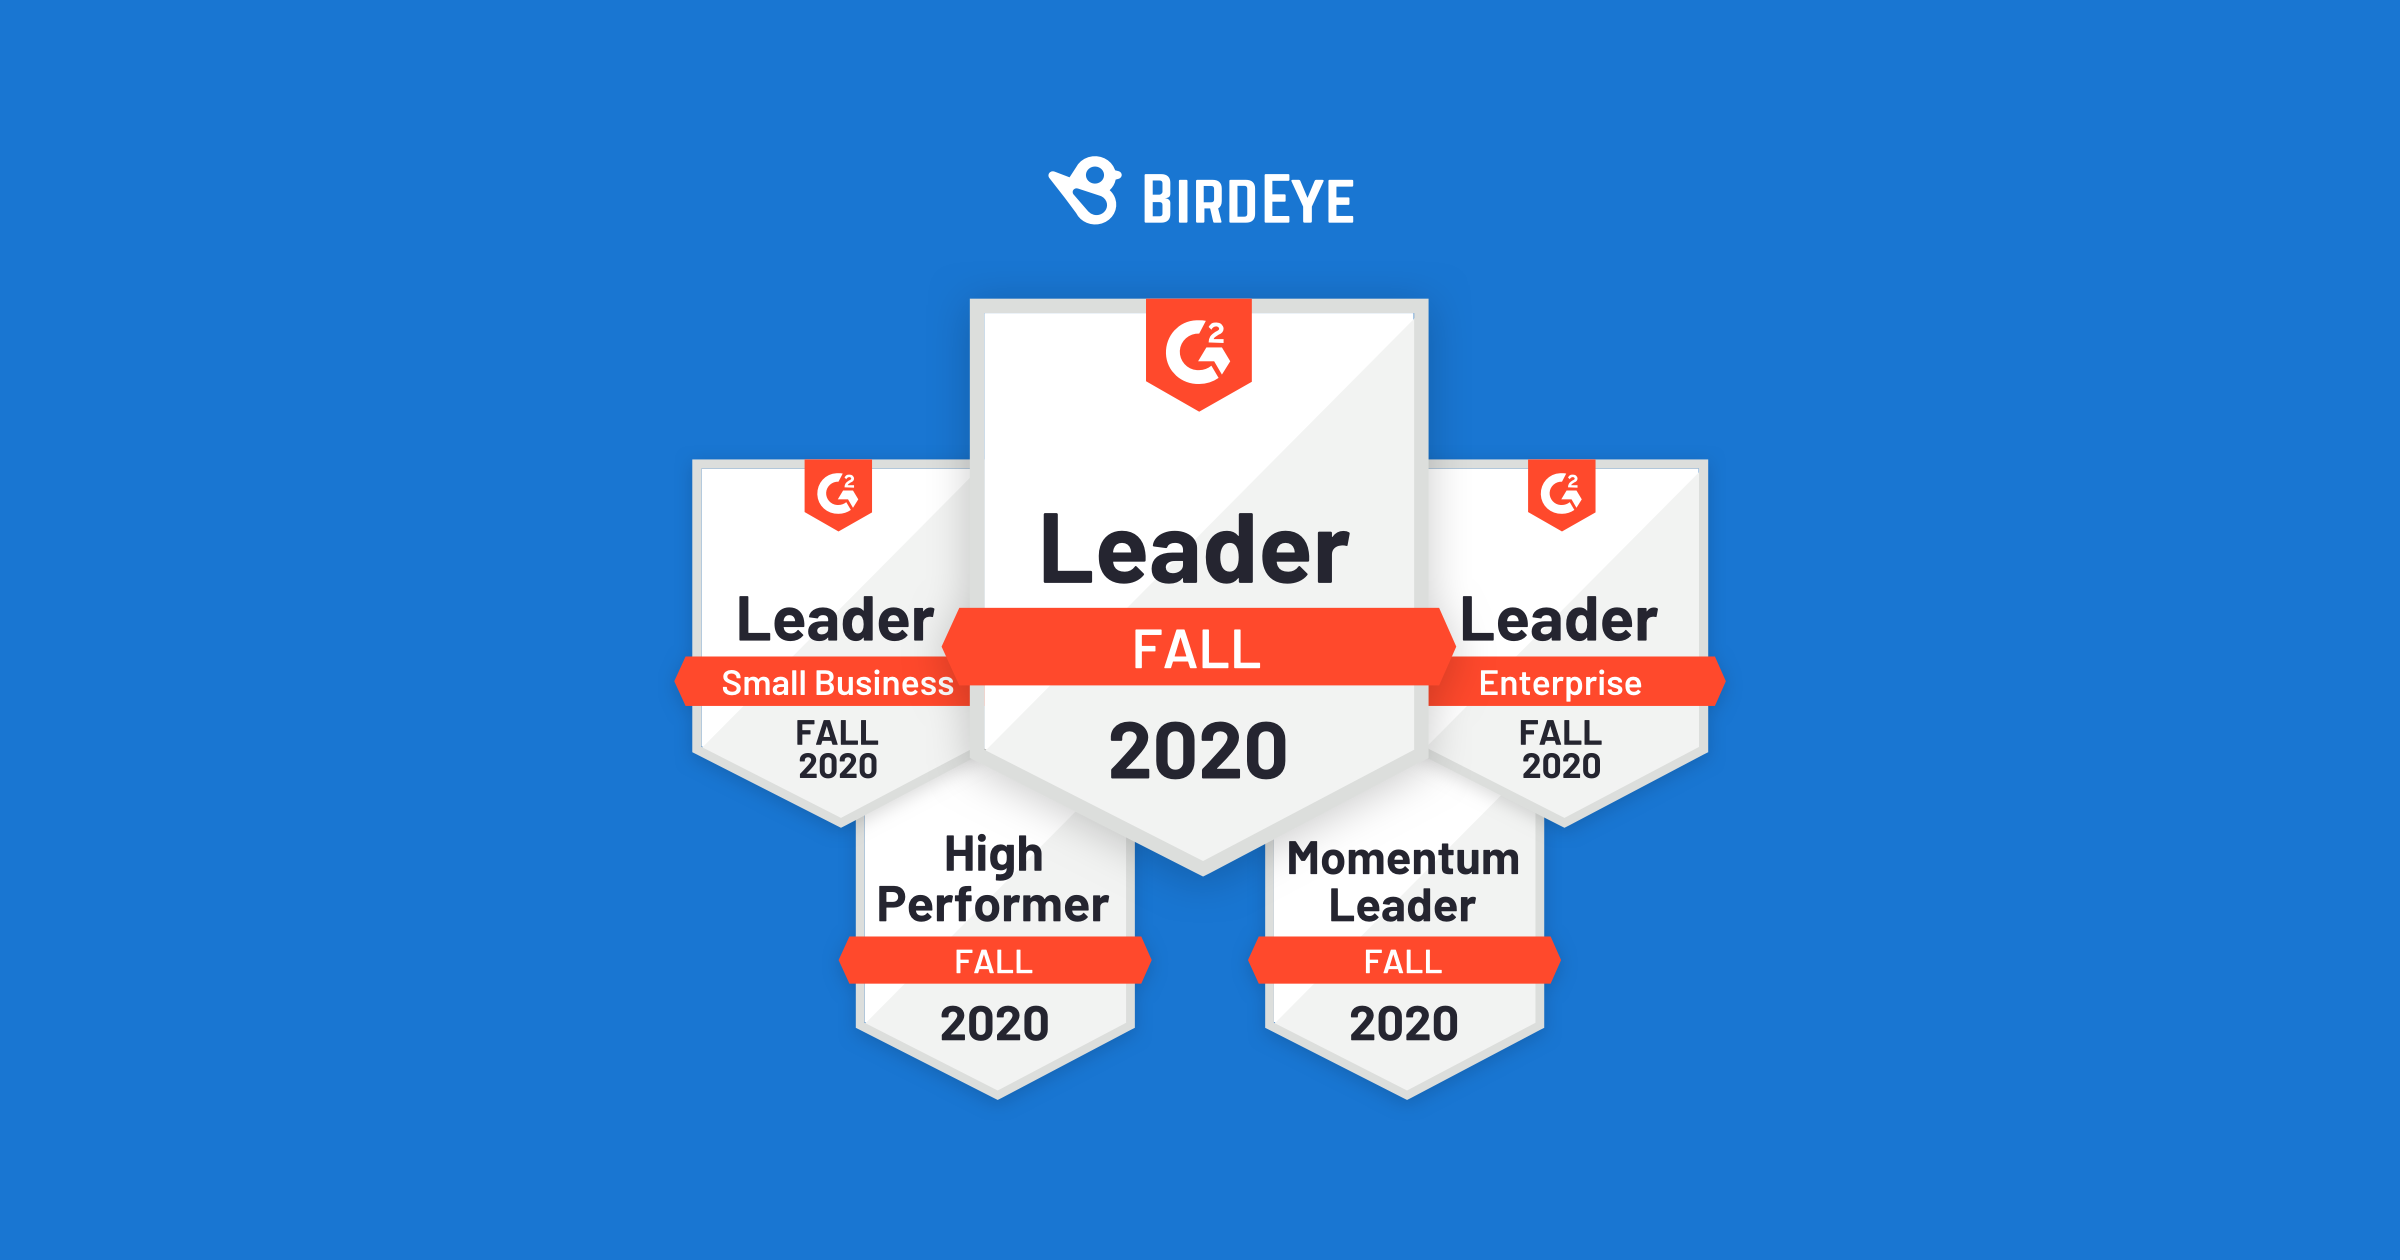 Cx Leader Birdeye Wins 120 Awards In G2 Fall Report Amongst Other Industry Recognition 1602697648459